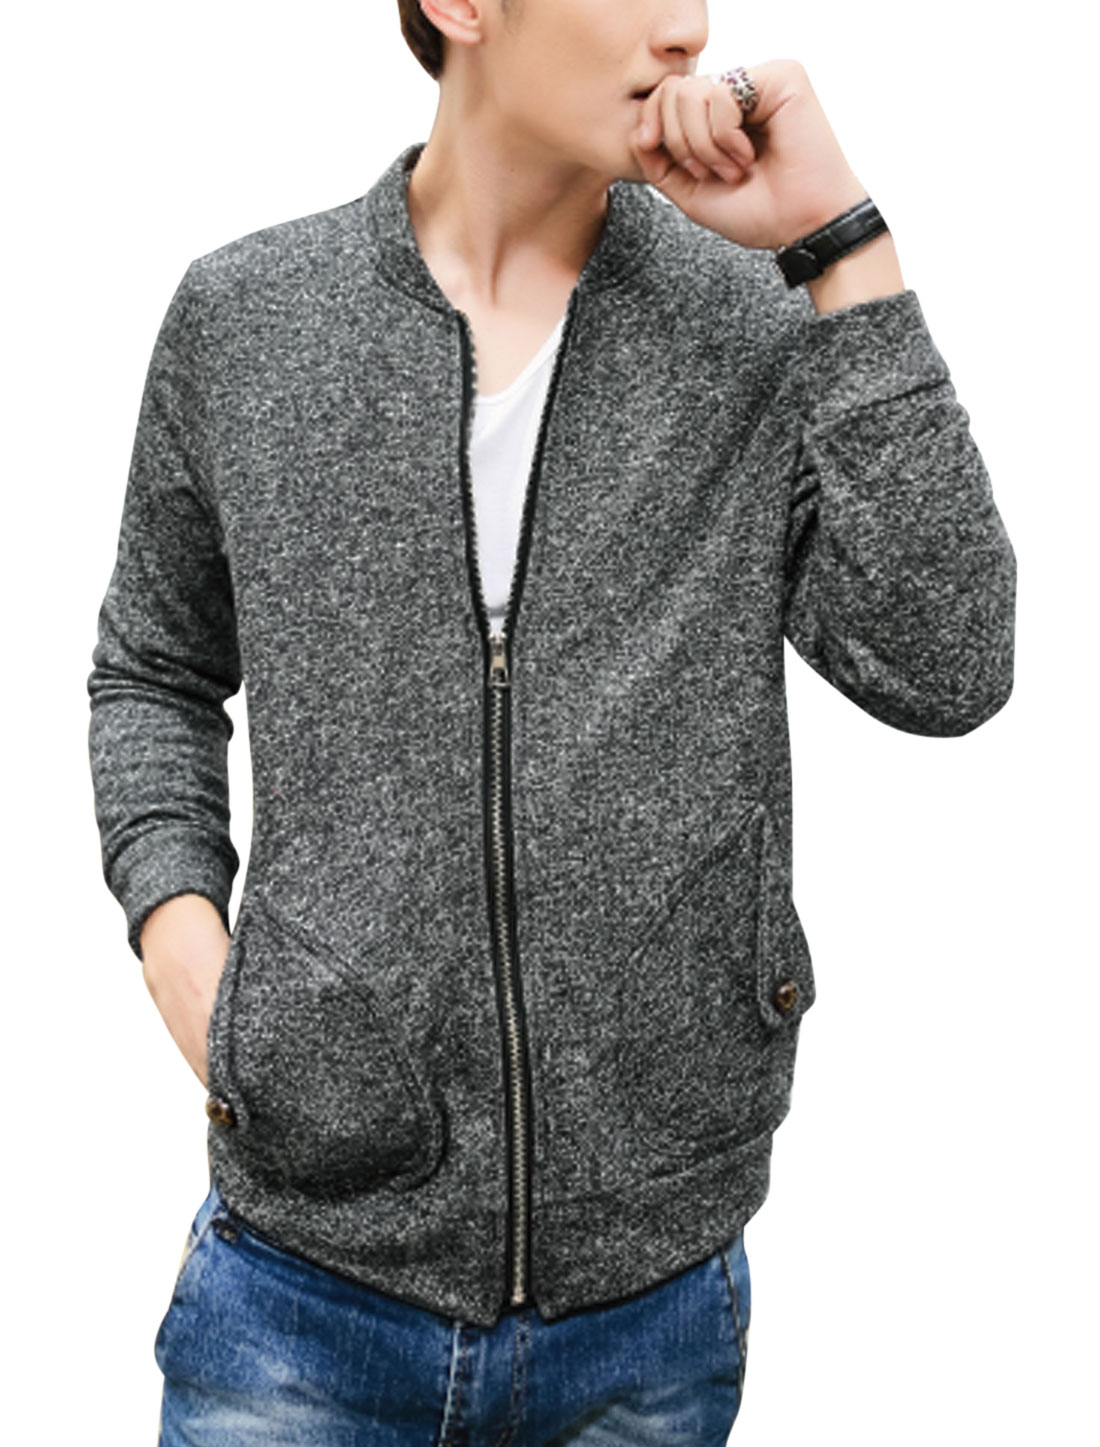 Men Round Neck Zip Fly Double Slant Pockets Front Casual Knit Jacket Dark Gray M